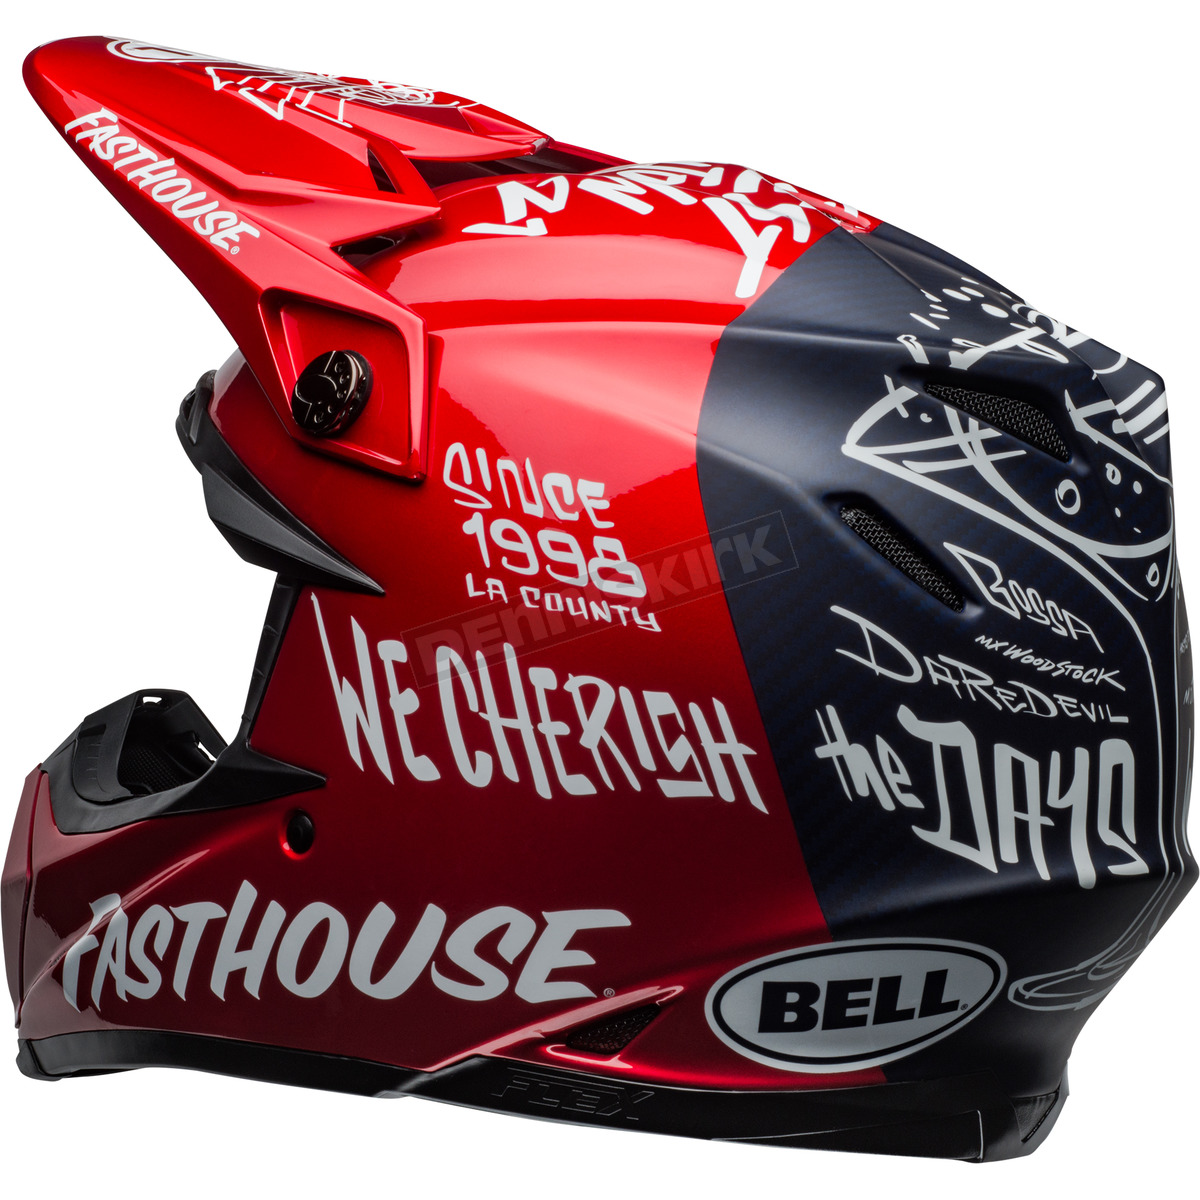 Bell Helmets Matte Navy Gloss Red White Moto-9 Fasthouse Day in the ... 793130de6